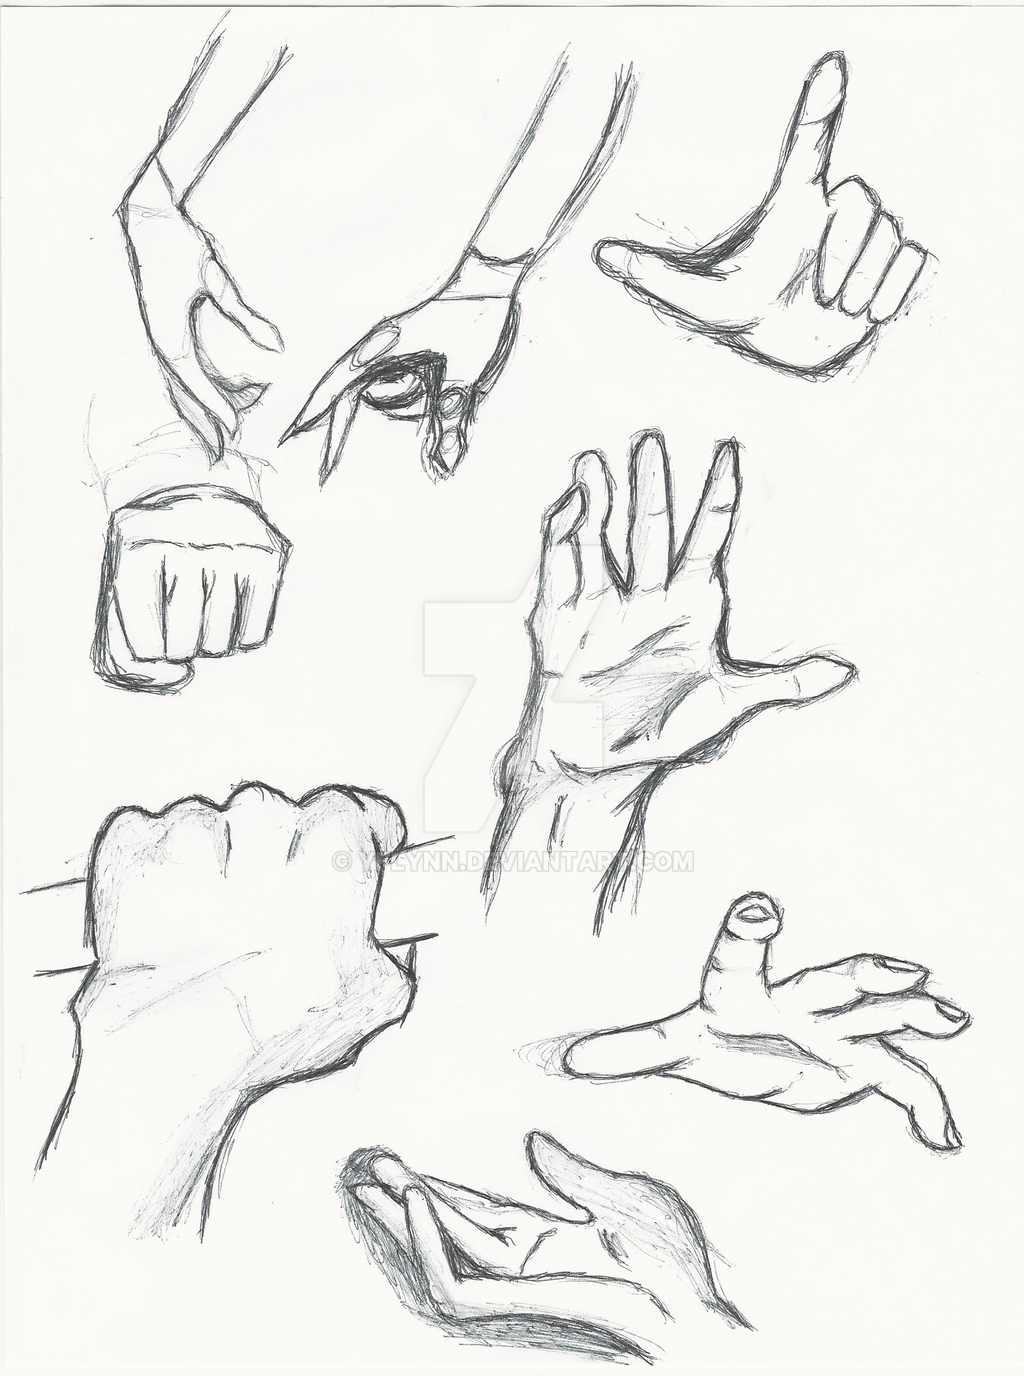 Hand Study/ Anime hands by Yflynn on DeviantArt